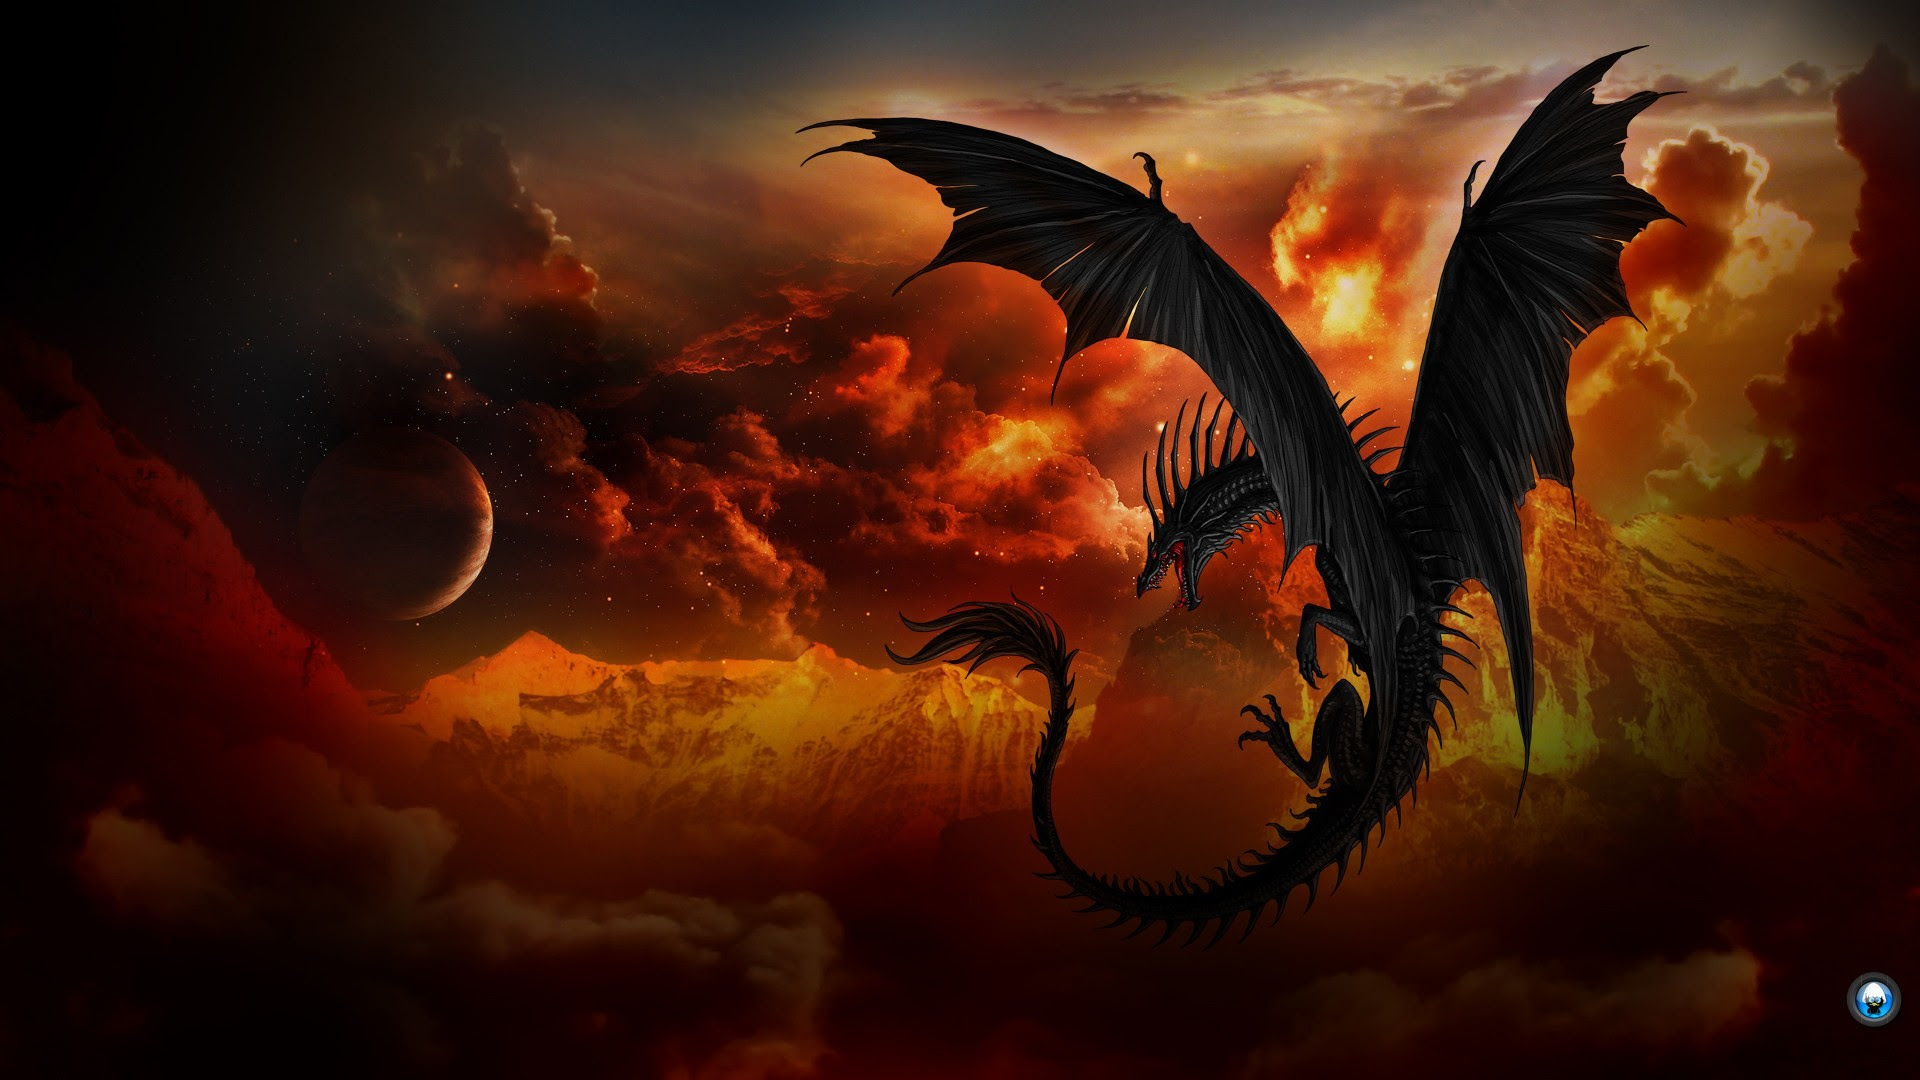 Black Dragon Wallpaper Hd 69 Images